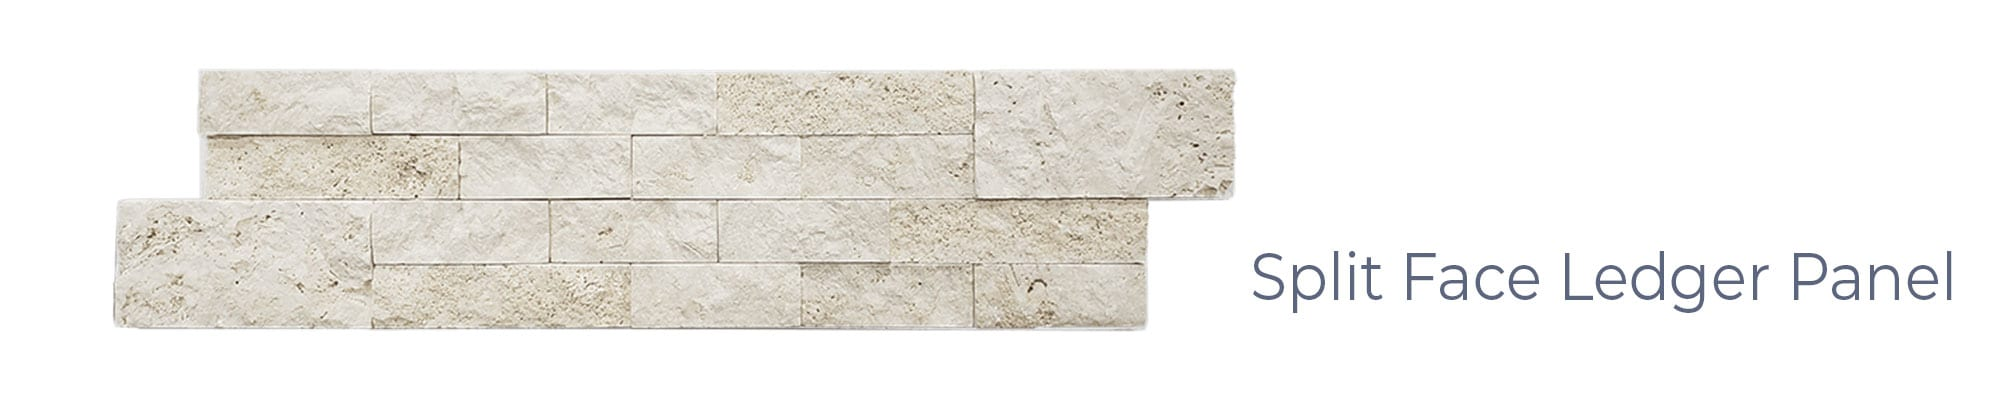 Stoneline-Group-Ivory-Marble-Collection-Marble-Veneer-Split-Face-Ledger-Panel-Pictures